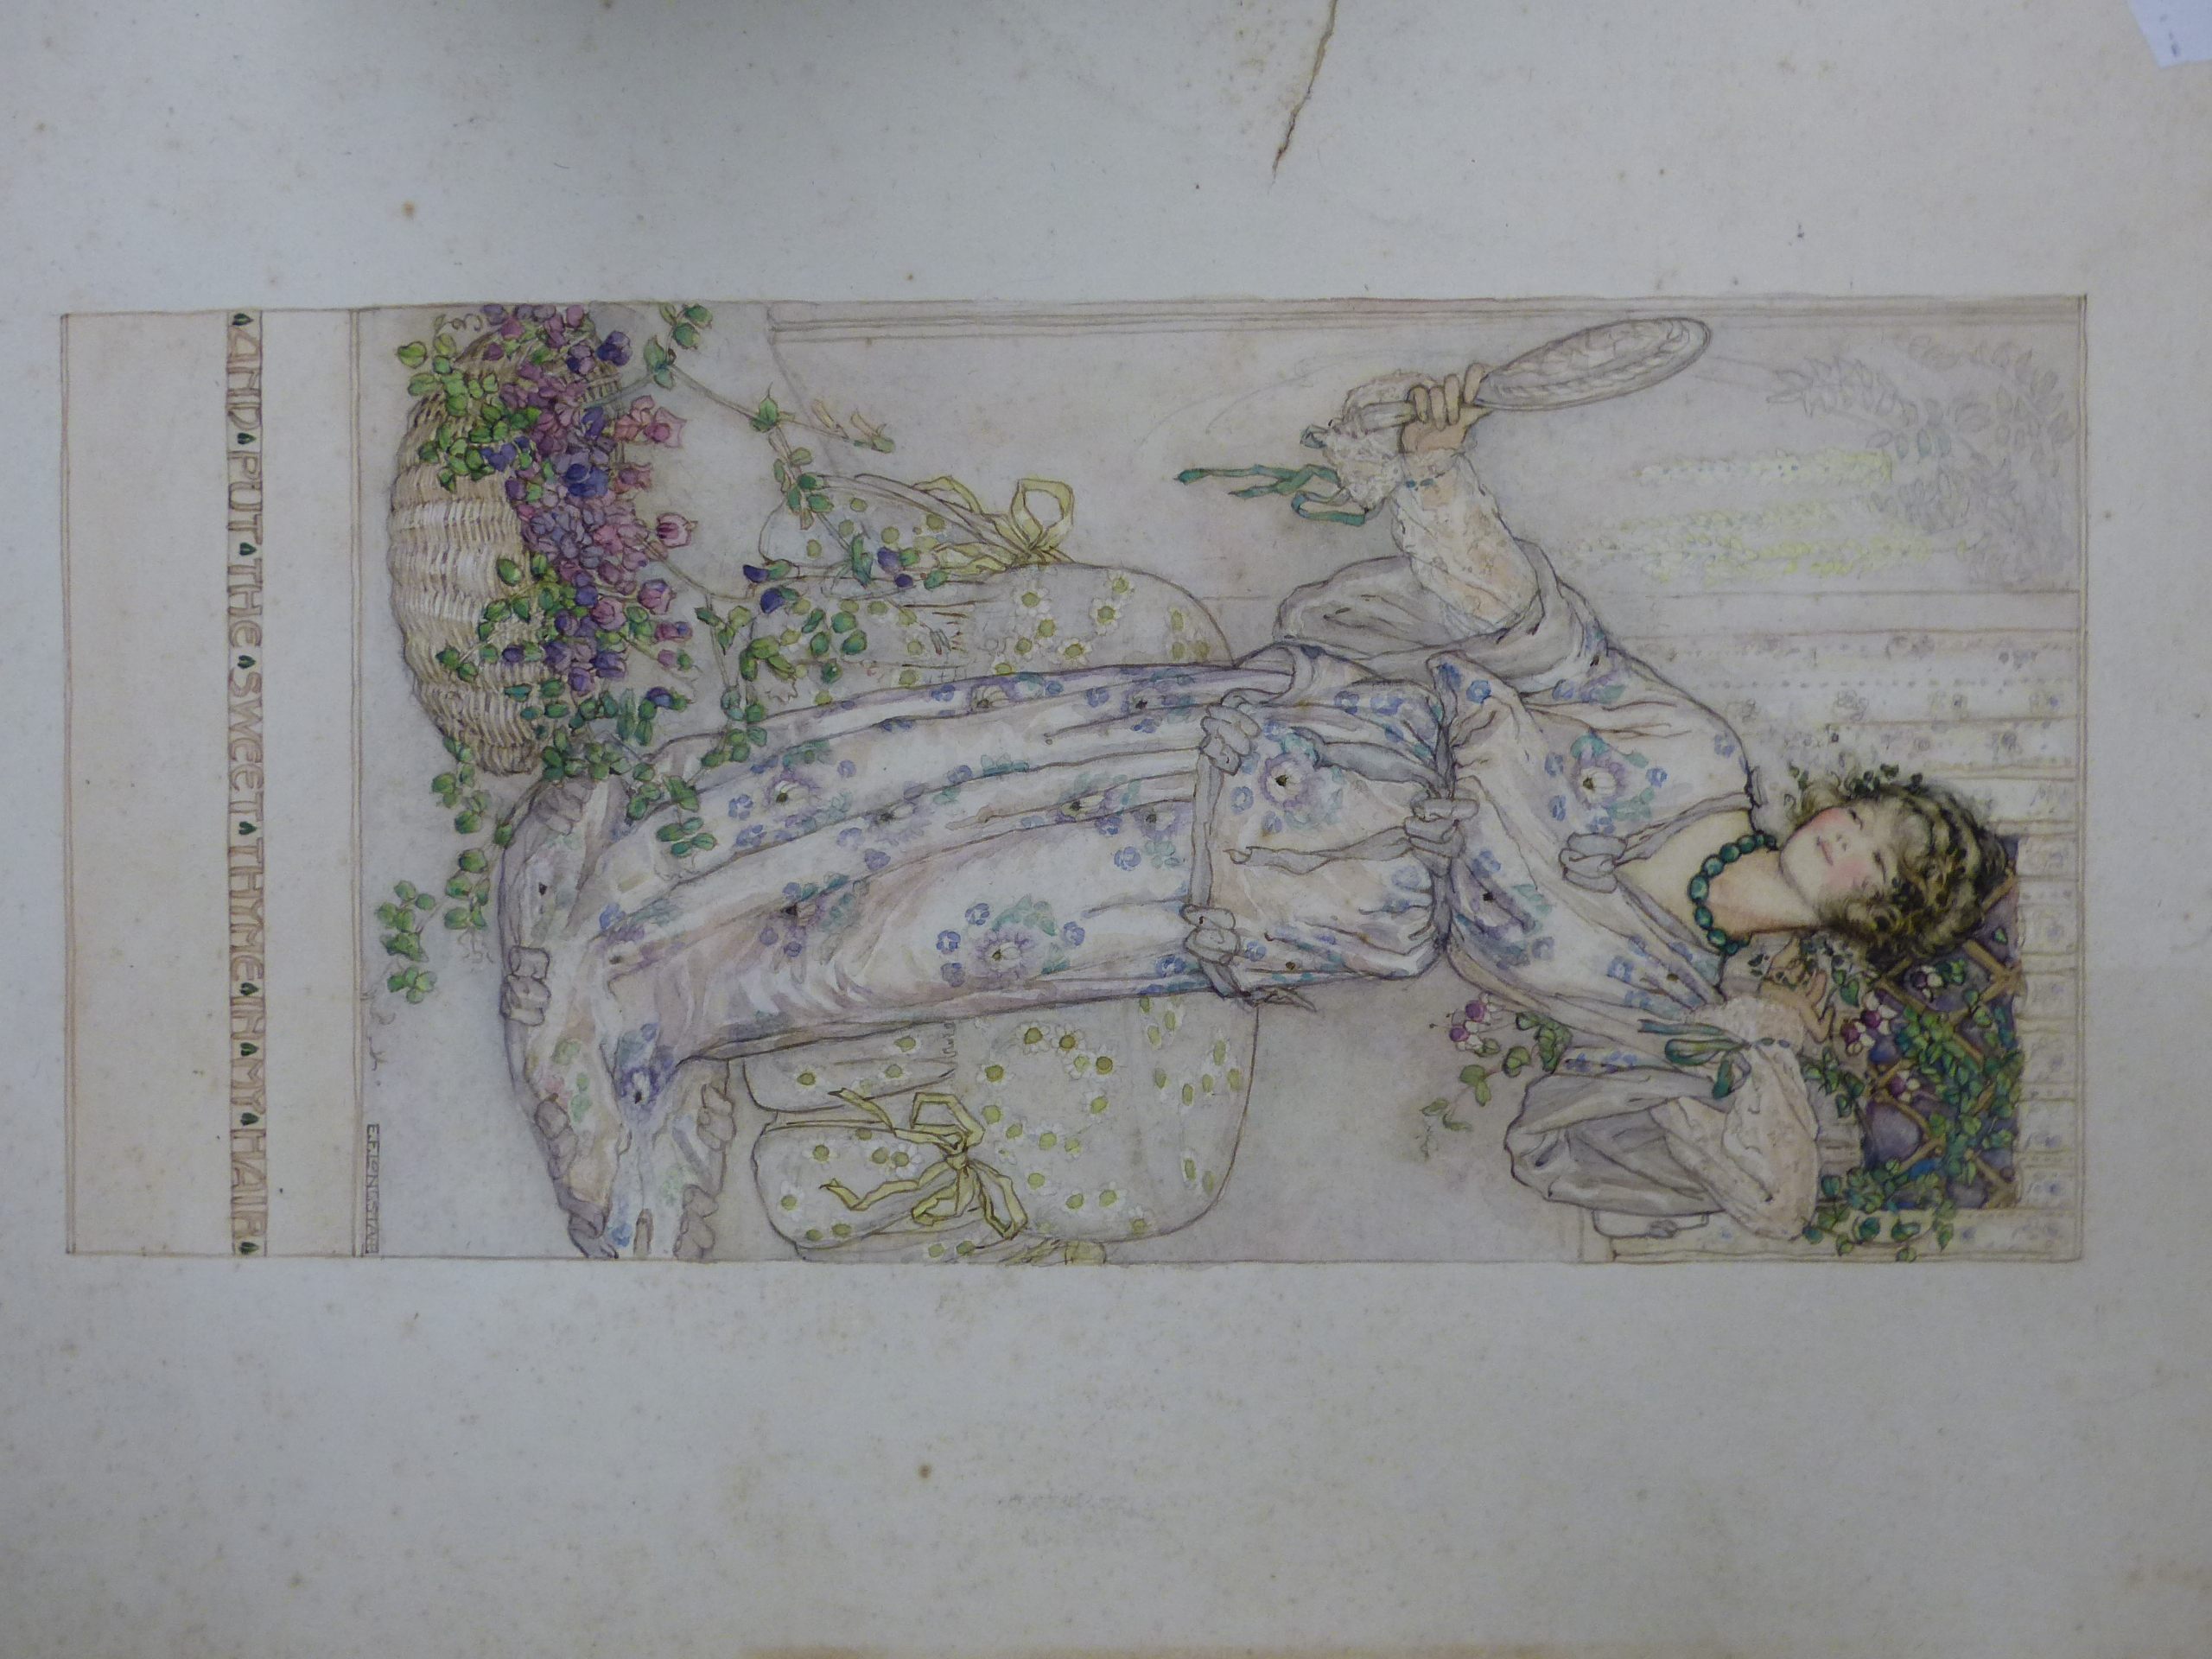 E.F LONGSTAFF (19th / 20th C.) A YOUNG BEAUTY HOLDING A HAND MIRROR. SIGNED WATERCOLOUR , UNFRAMED